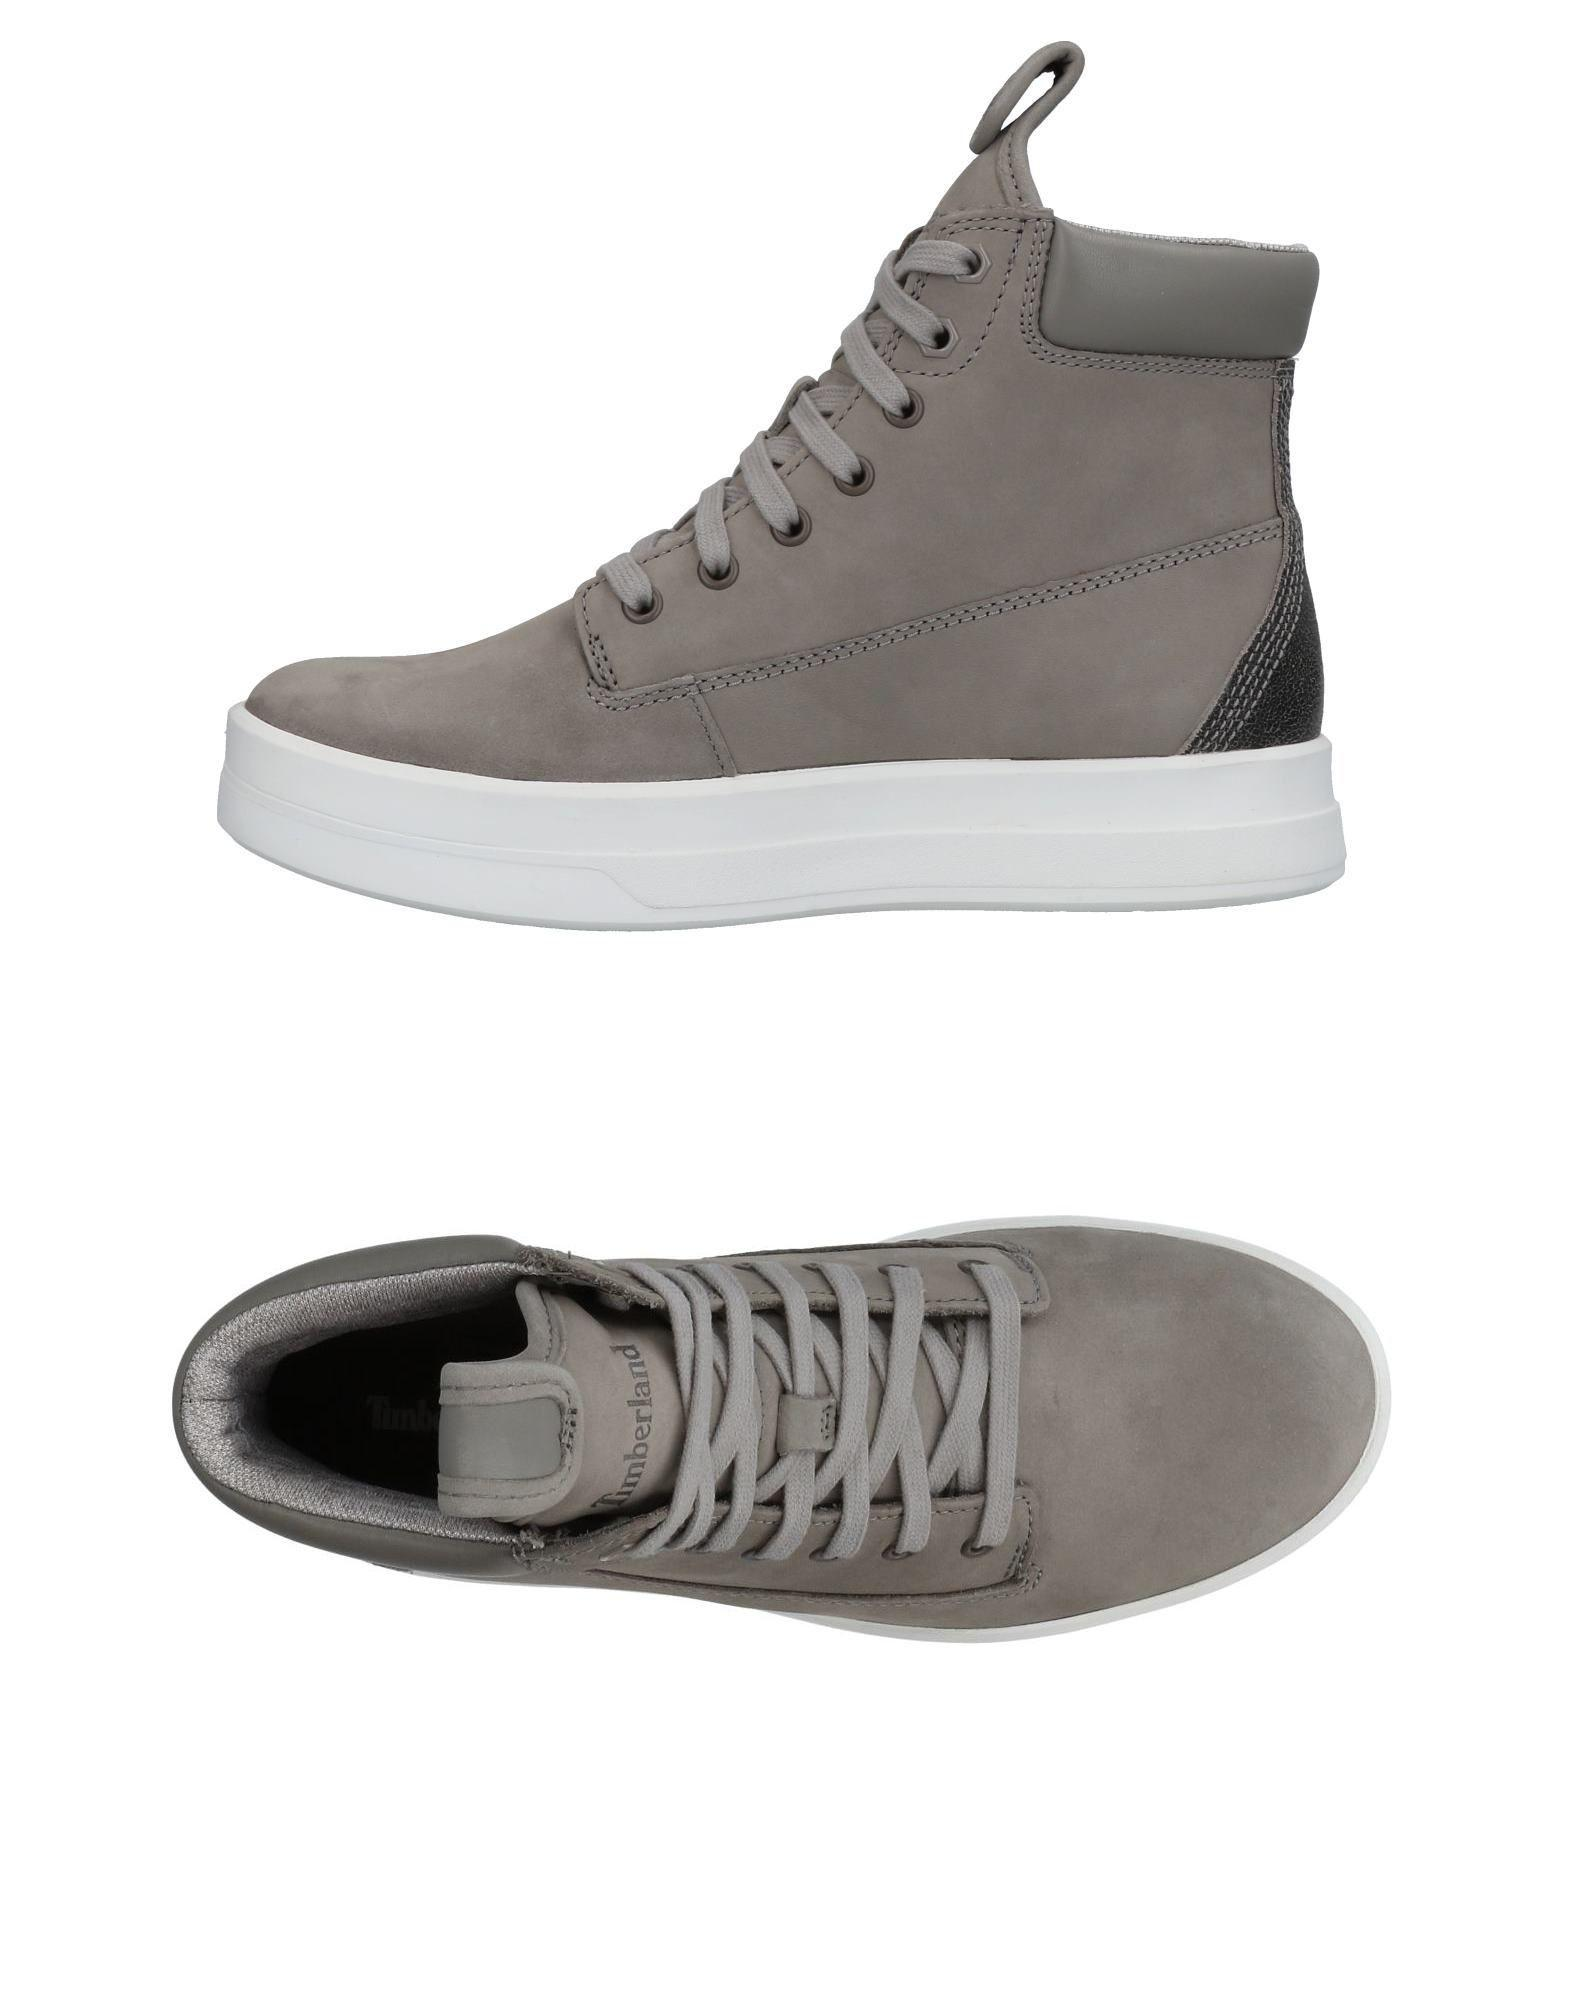 Timberland Sneakers In Grey